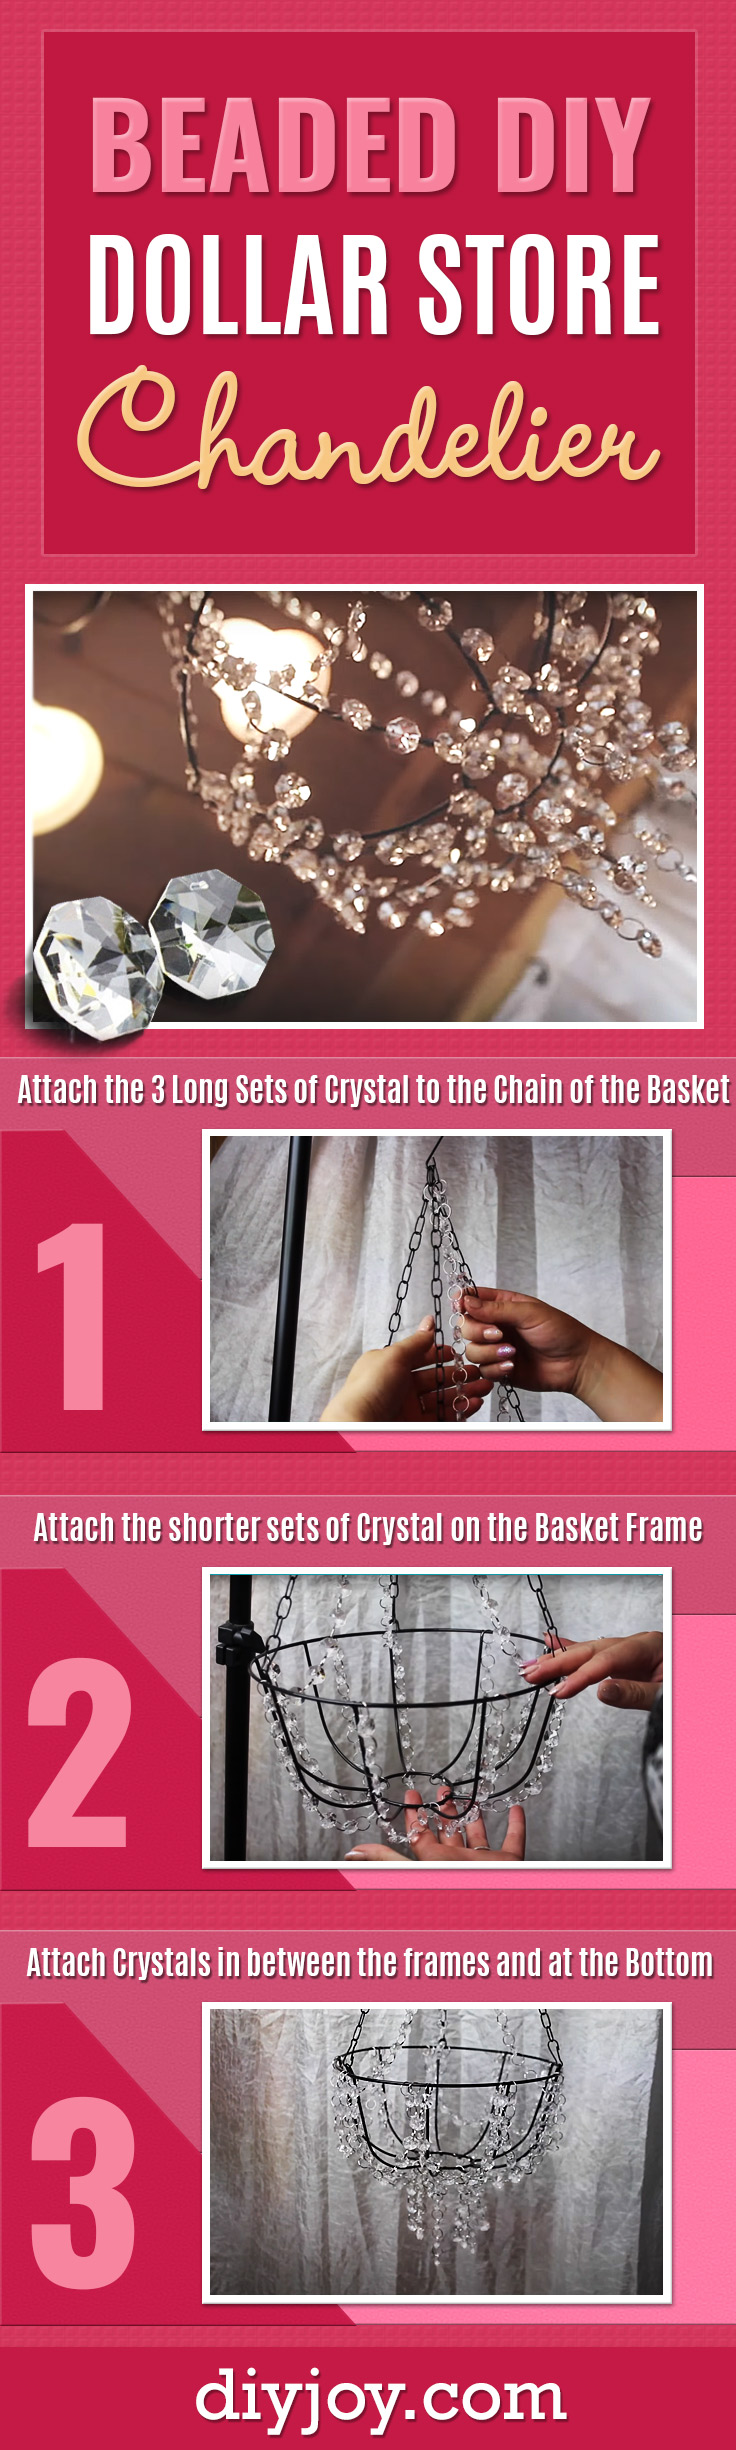 Dollar Tree Crafts - Cheap Beaded Chandelier Dollar Store Crafts and Easy Home Decor Projects - Easy DIY Lighting Idea on A Budget